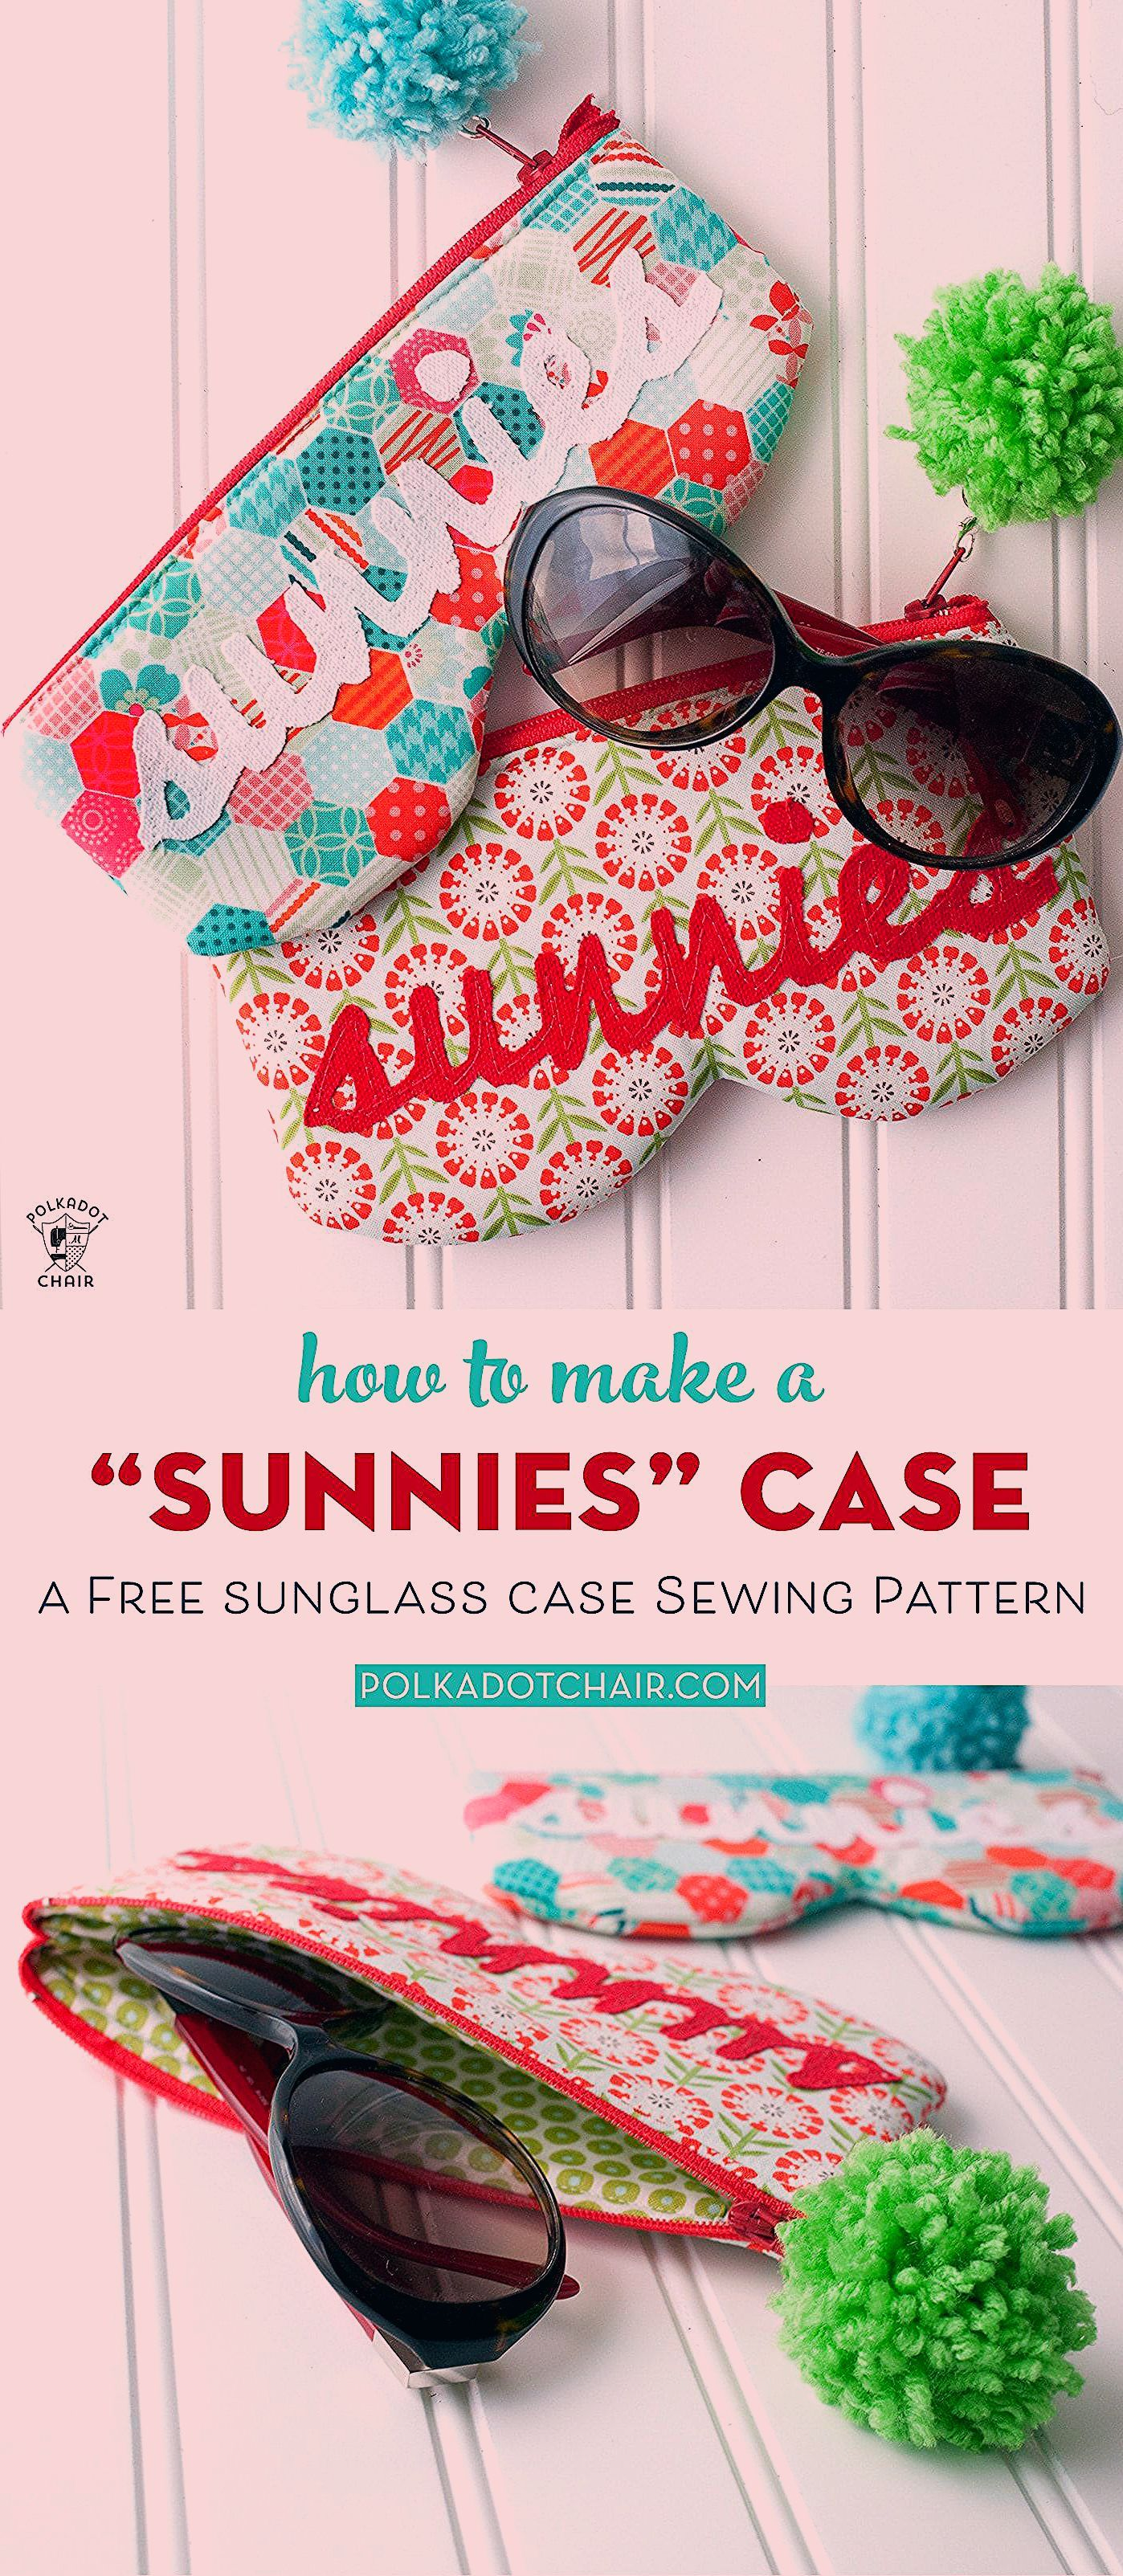 A free sewing pattern for a Sunnies Sunglasses Case How to make a sunglass case a simple sewing pattern and small sewing project